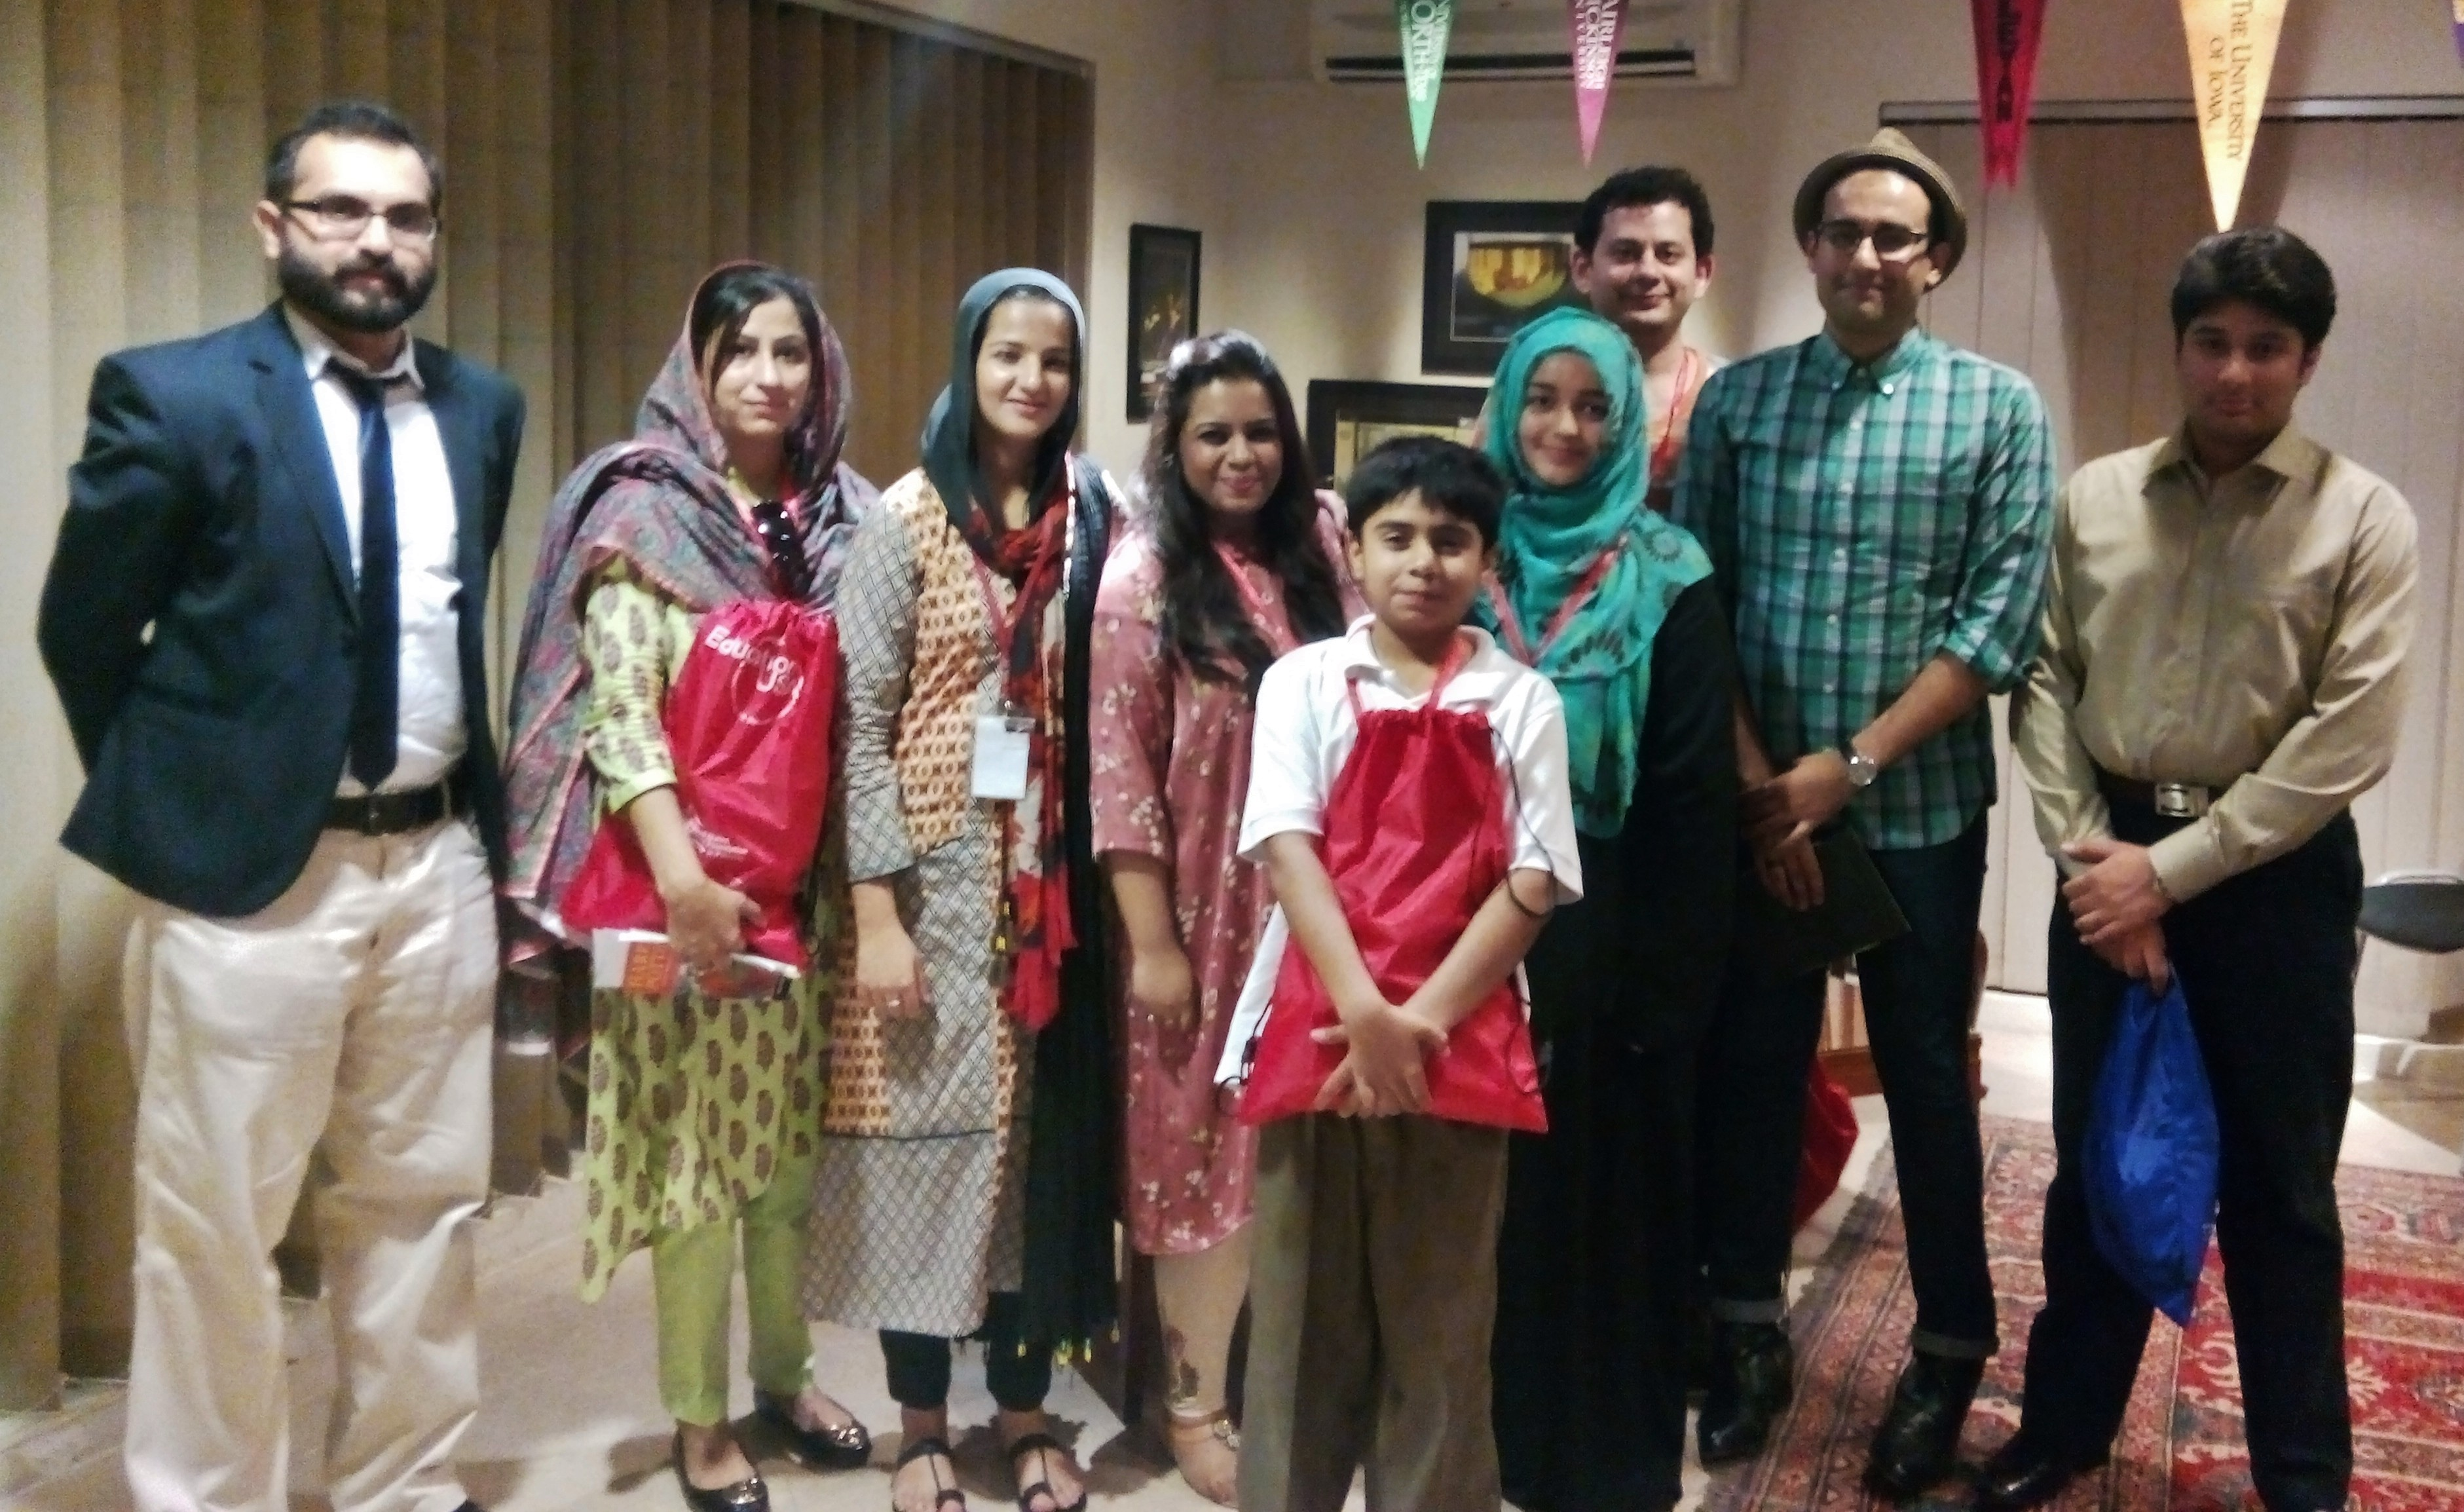 Group photo of the winners with the jury members - Winners: Arsalan Qureshi (right), Eissa Saeed (2nd from right), Raza Naeem (last row) and Amina Gillani (2nd from left).